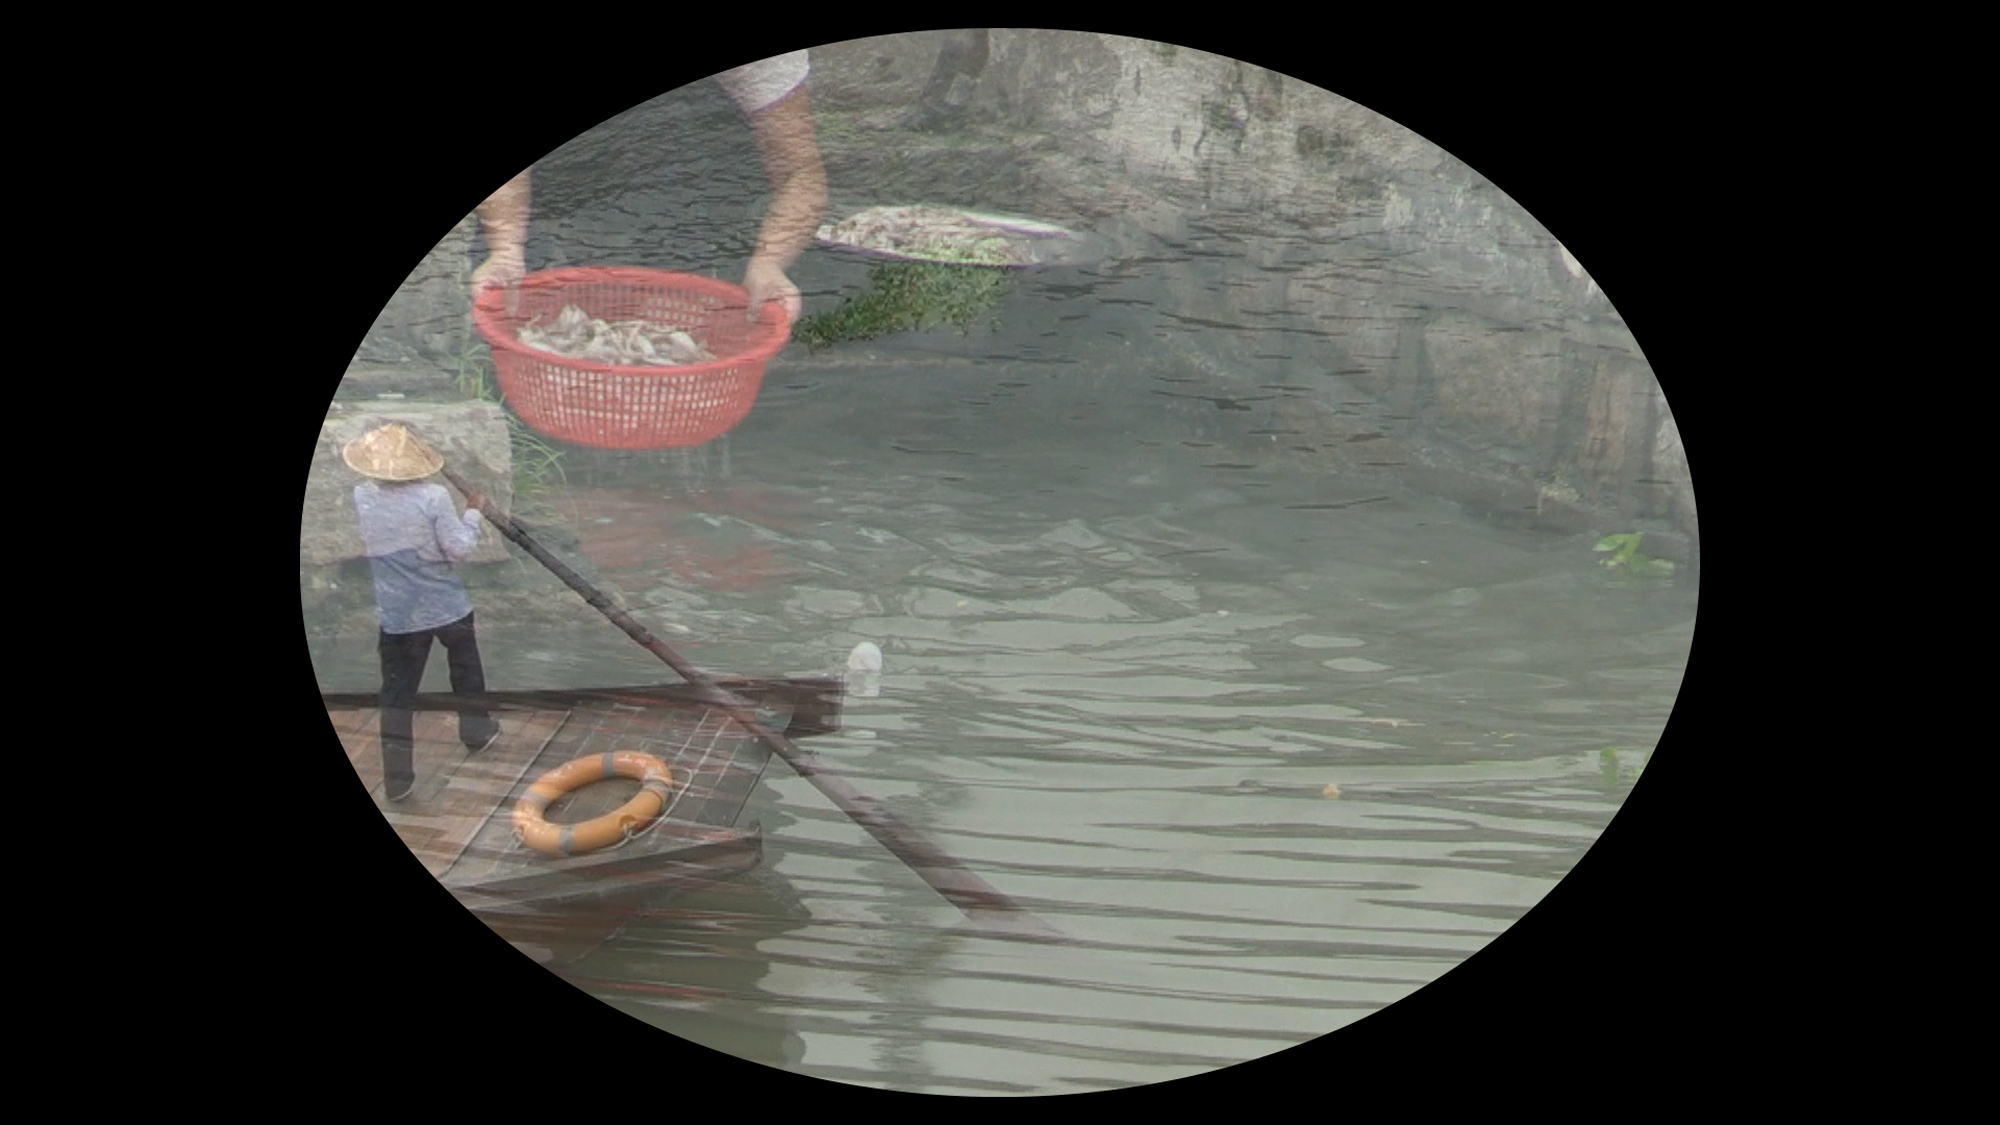 2j_Zhujiajiao-main-video-02-test-with-mask-QT.00_02_43_14.Still006.jpg